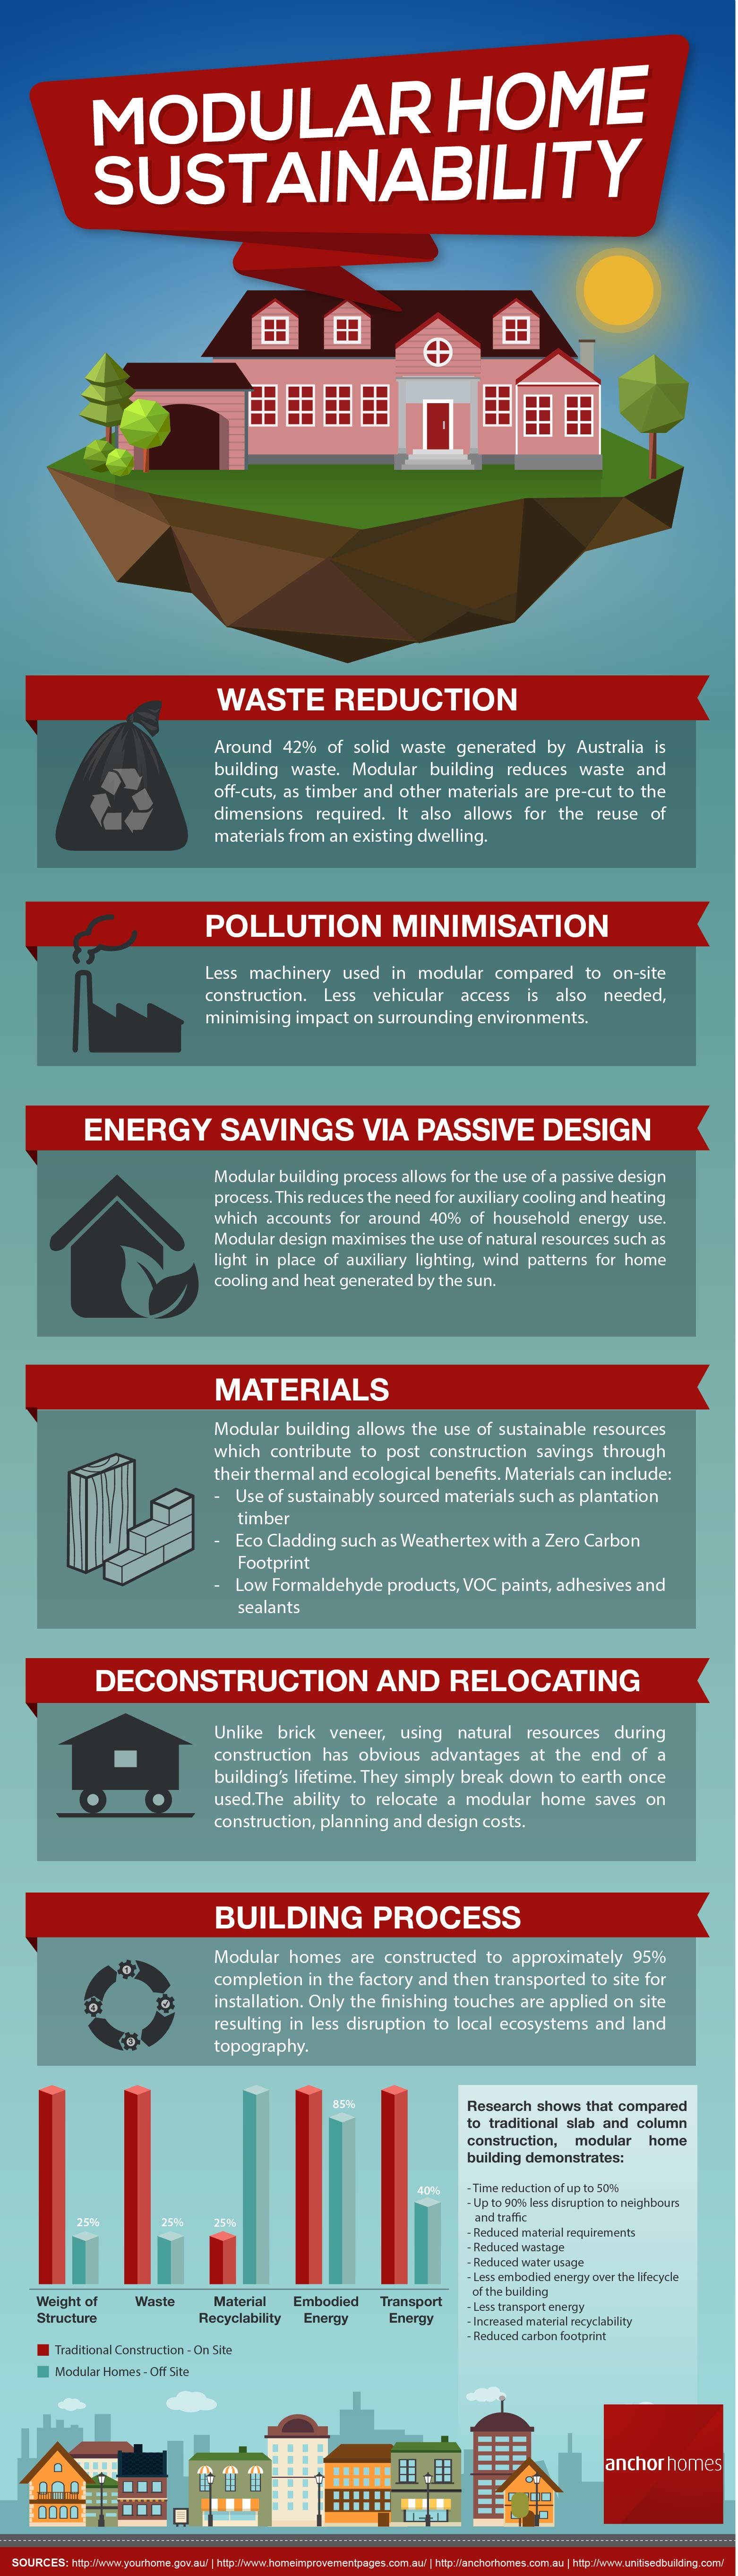 modular-home-sustainability-infographic